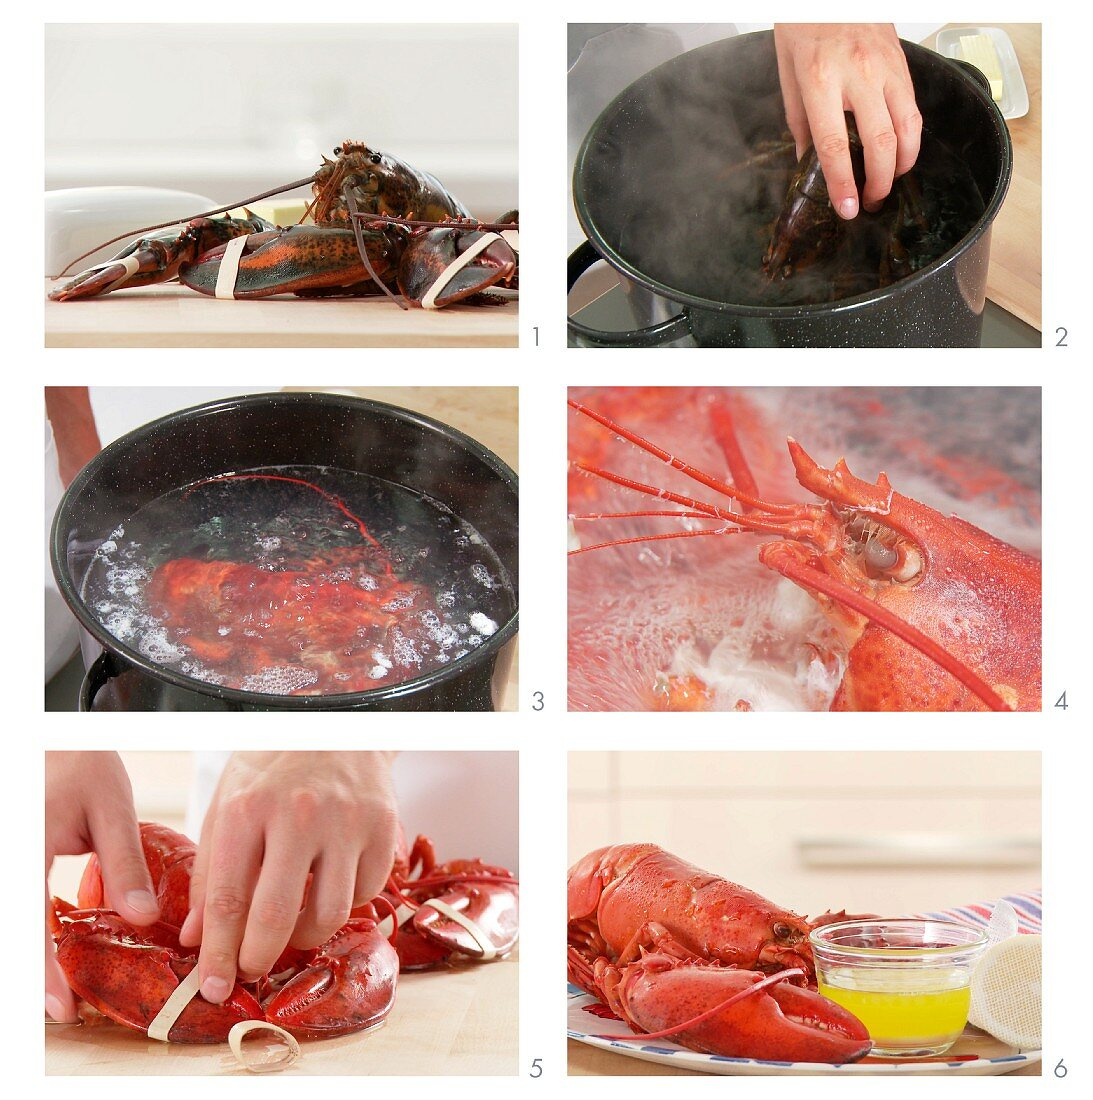 Lobster being cooked (US-English voice-over)